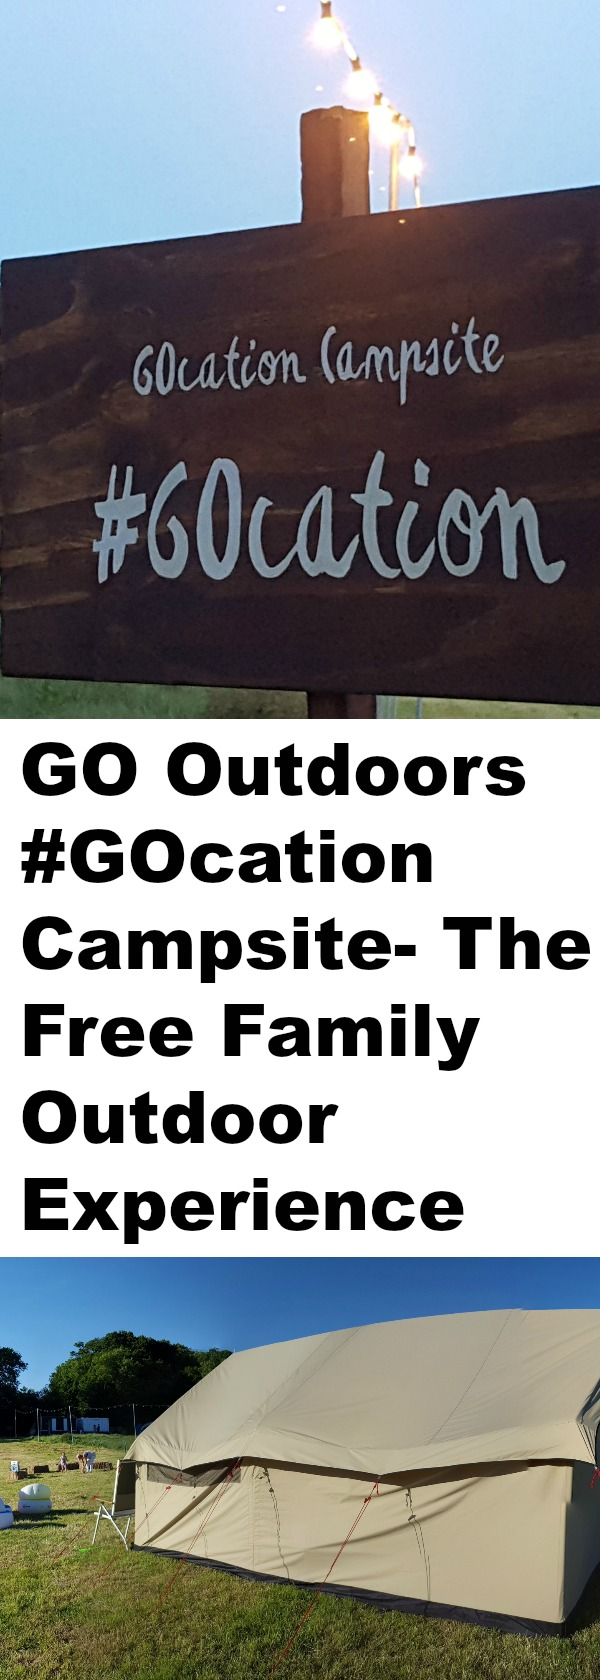 GO Outdoors GOcation- The Free Family Outdoor Experience